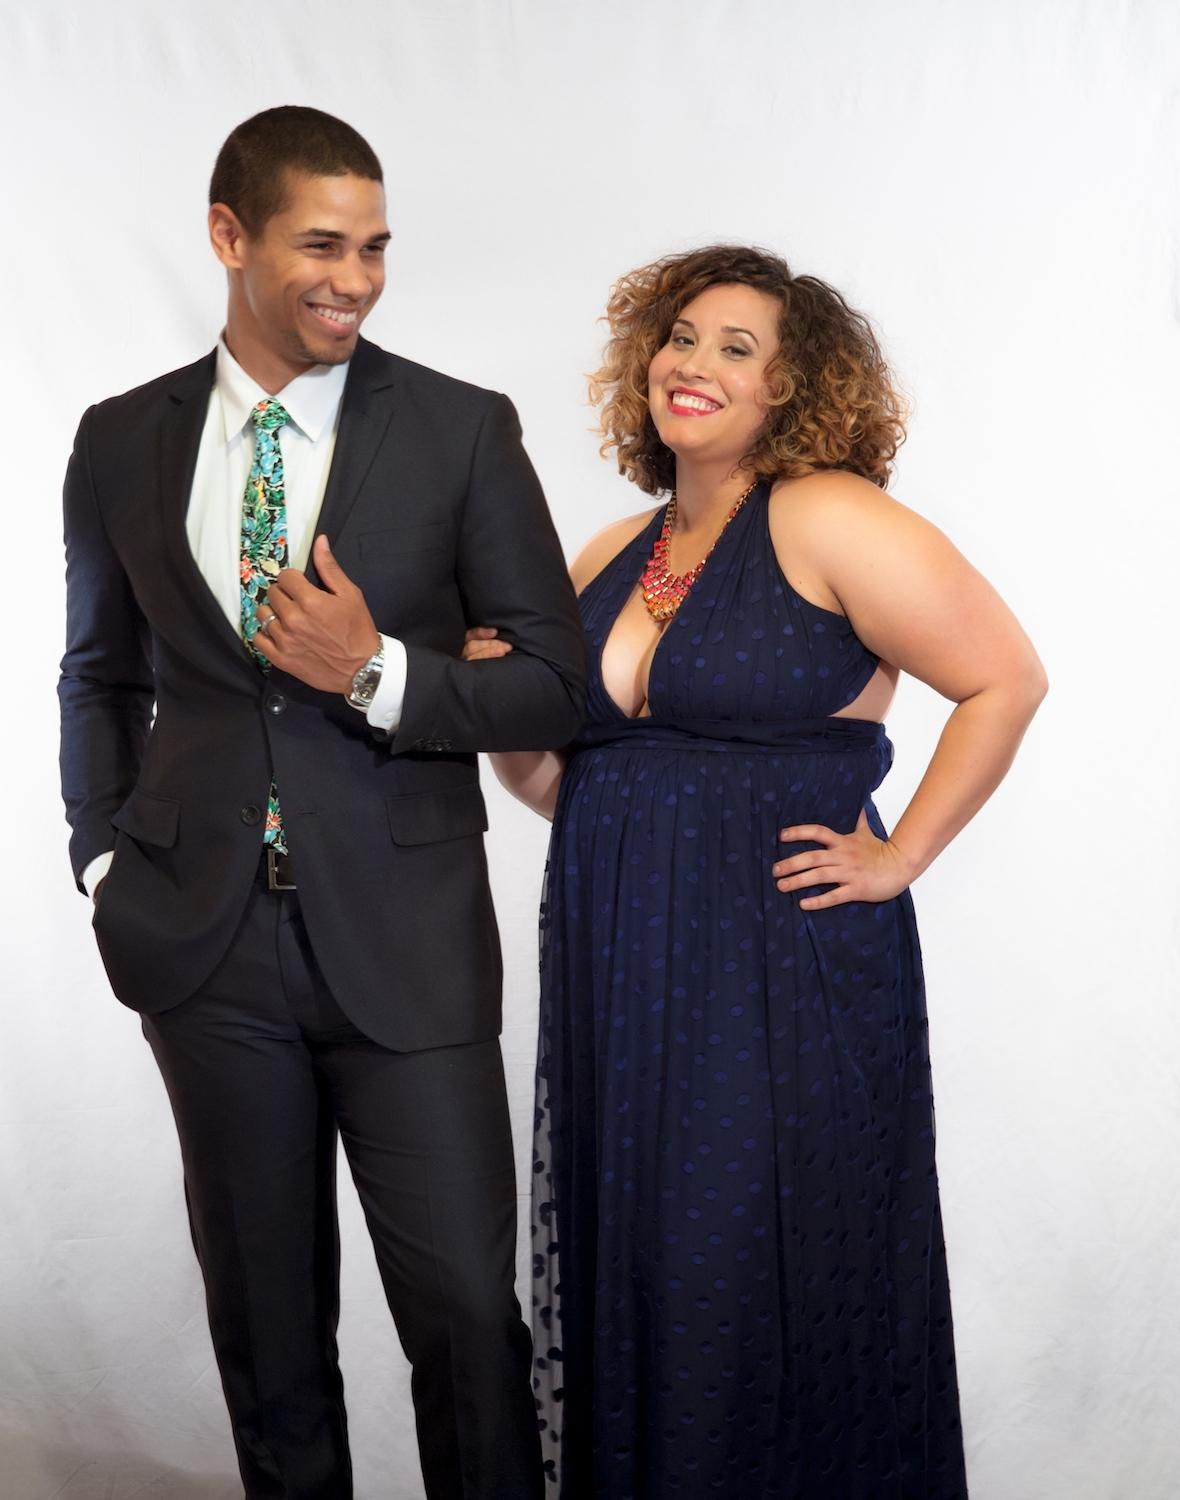 PARTY STYLE: Black Tie Optional / Navy suit: model's own / Tropical tie: (The Hillside) Article / Dress: (Privacy Please) Finery Dress Boutique / Image: Tifani Ahren Davis // Published: 5.17.17